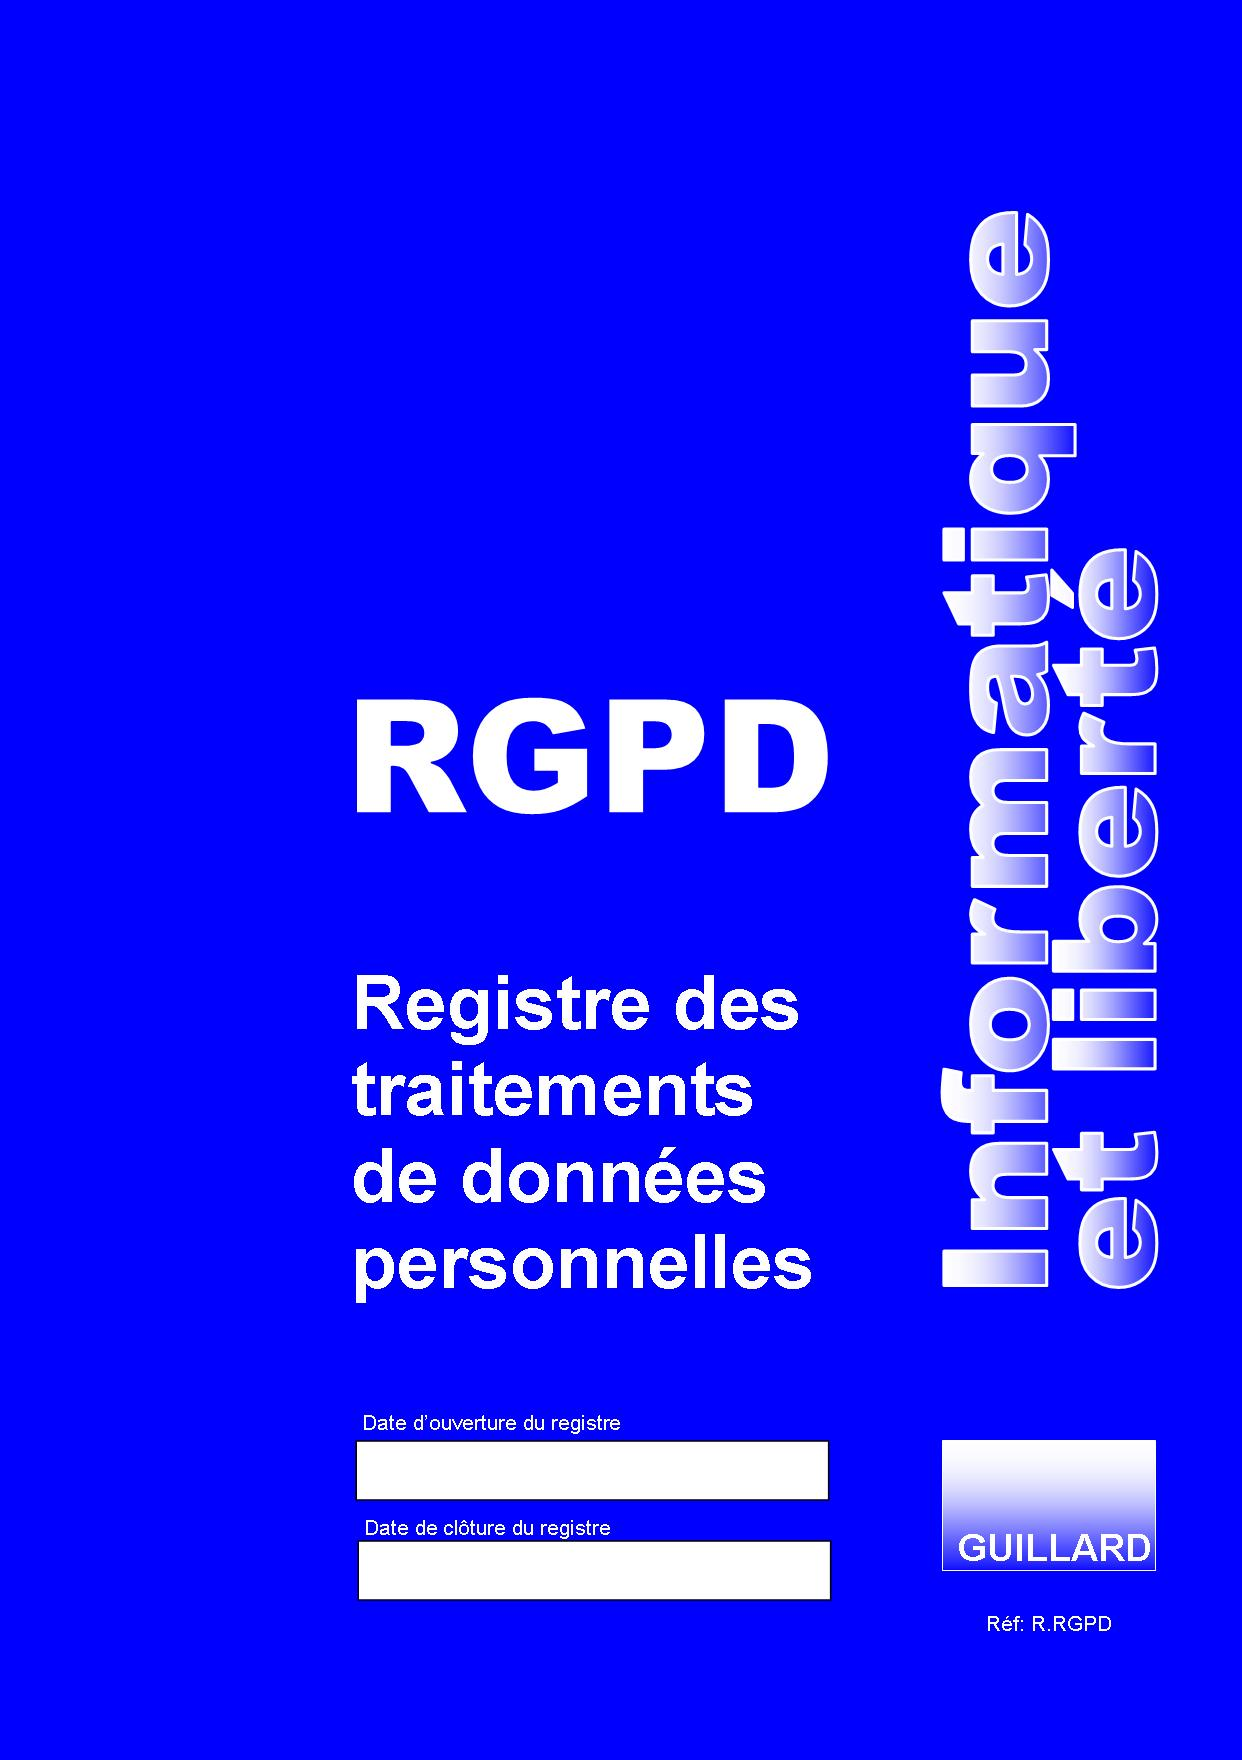 Registre des TRAITEMENTS DE DONNEES PERSONNELLES RGPD - R.RGPD